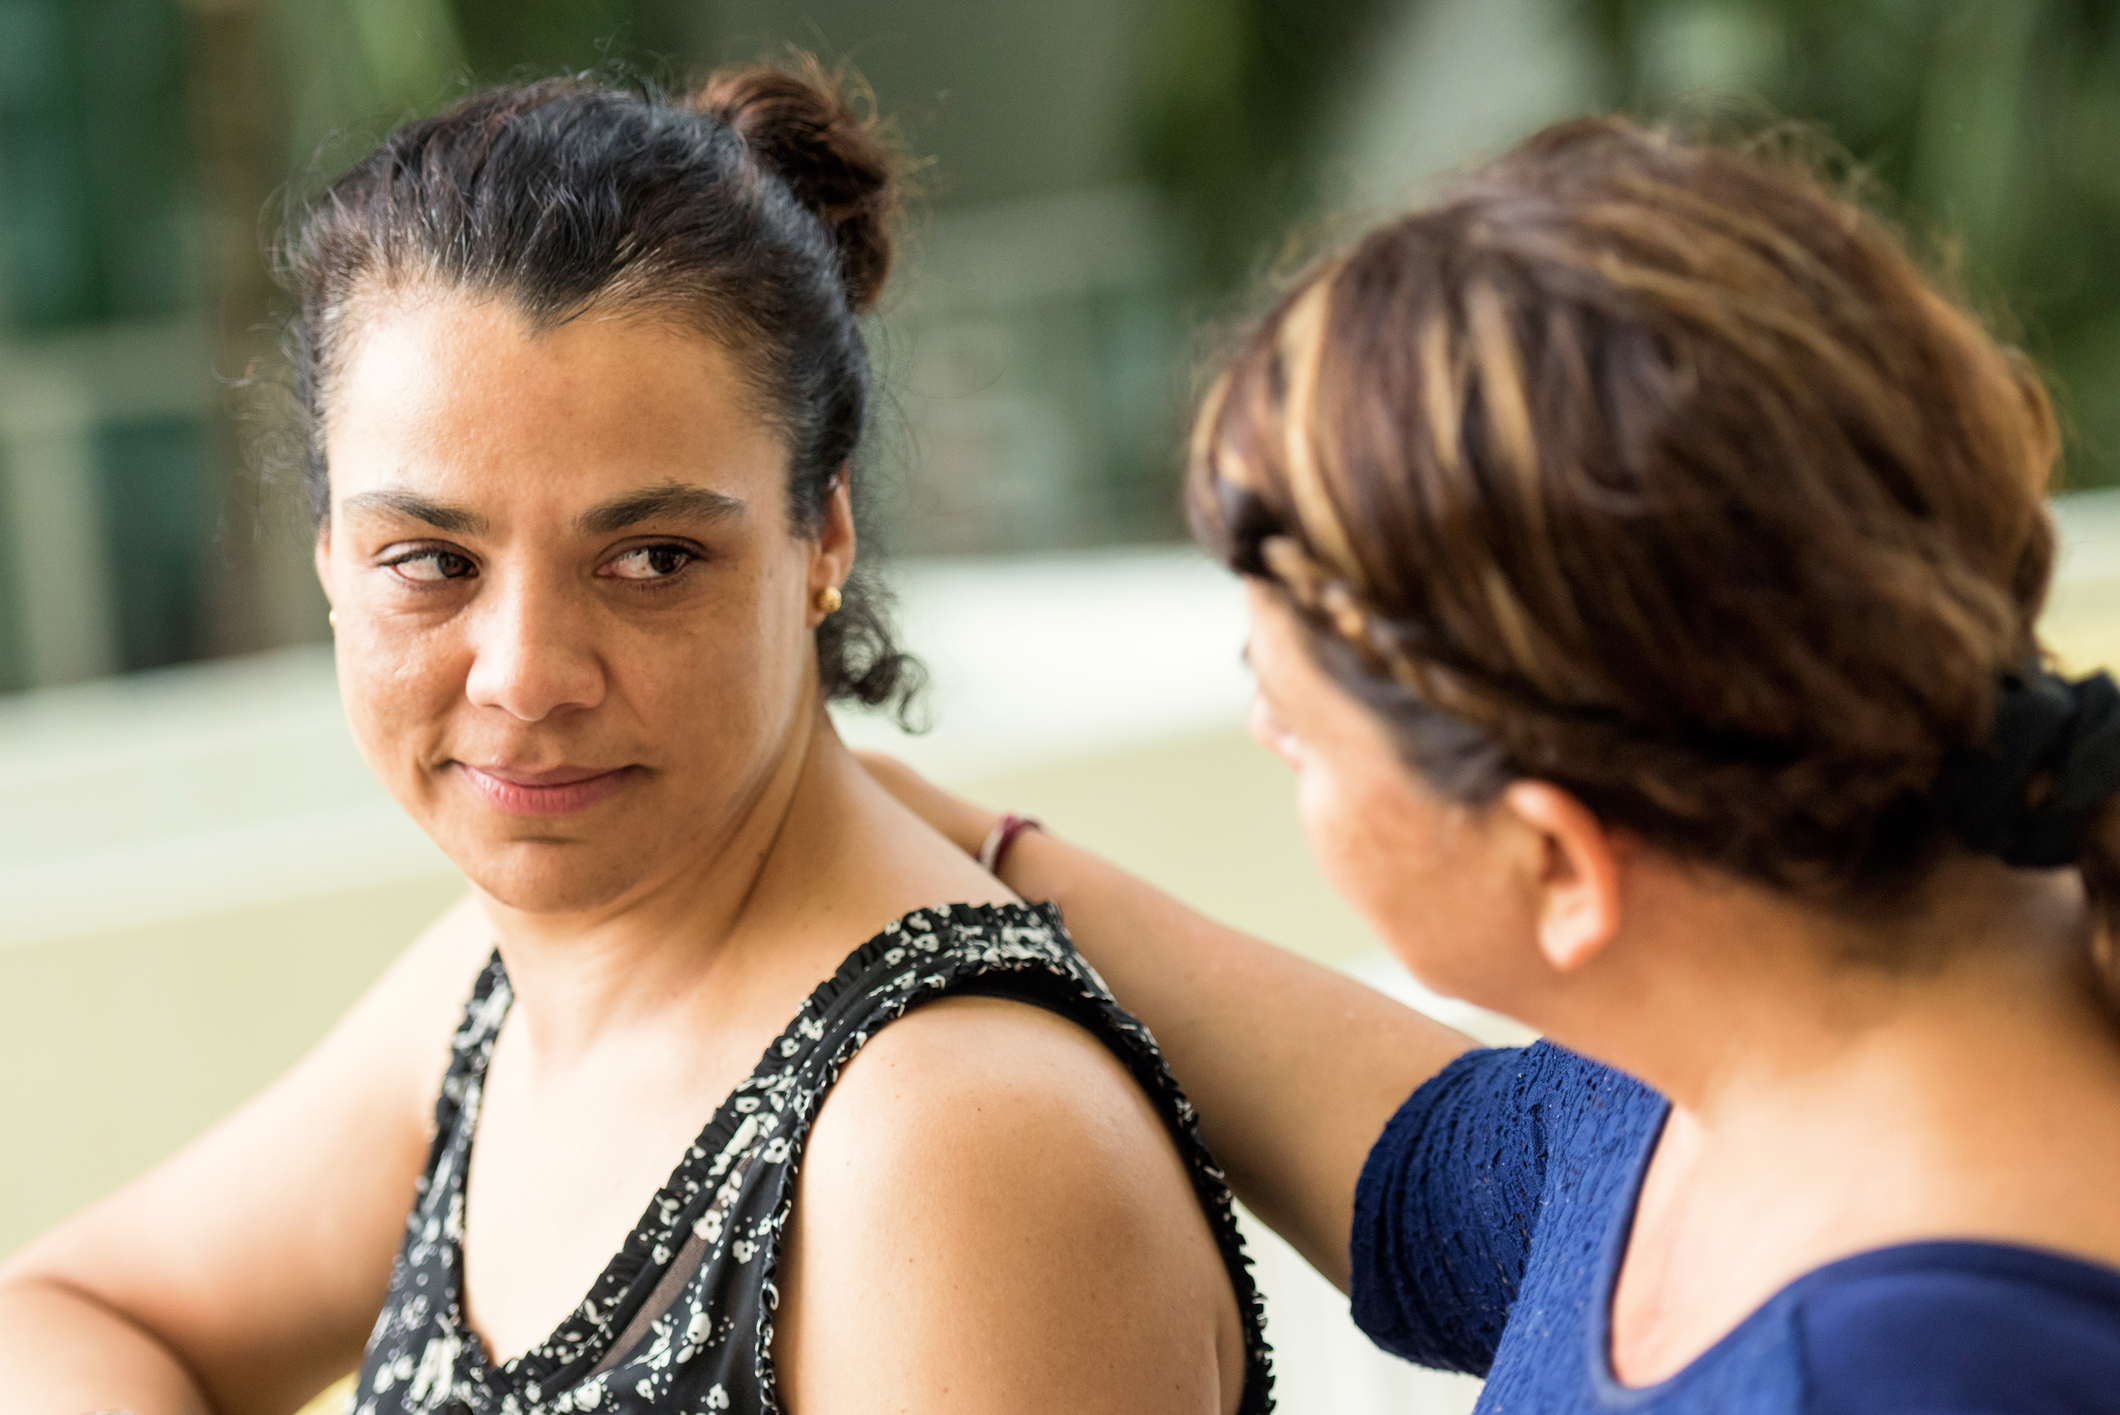 Close up of two women, one offering the other a compassionate arm around her shoulders